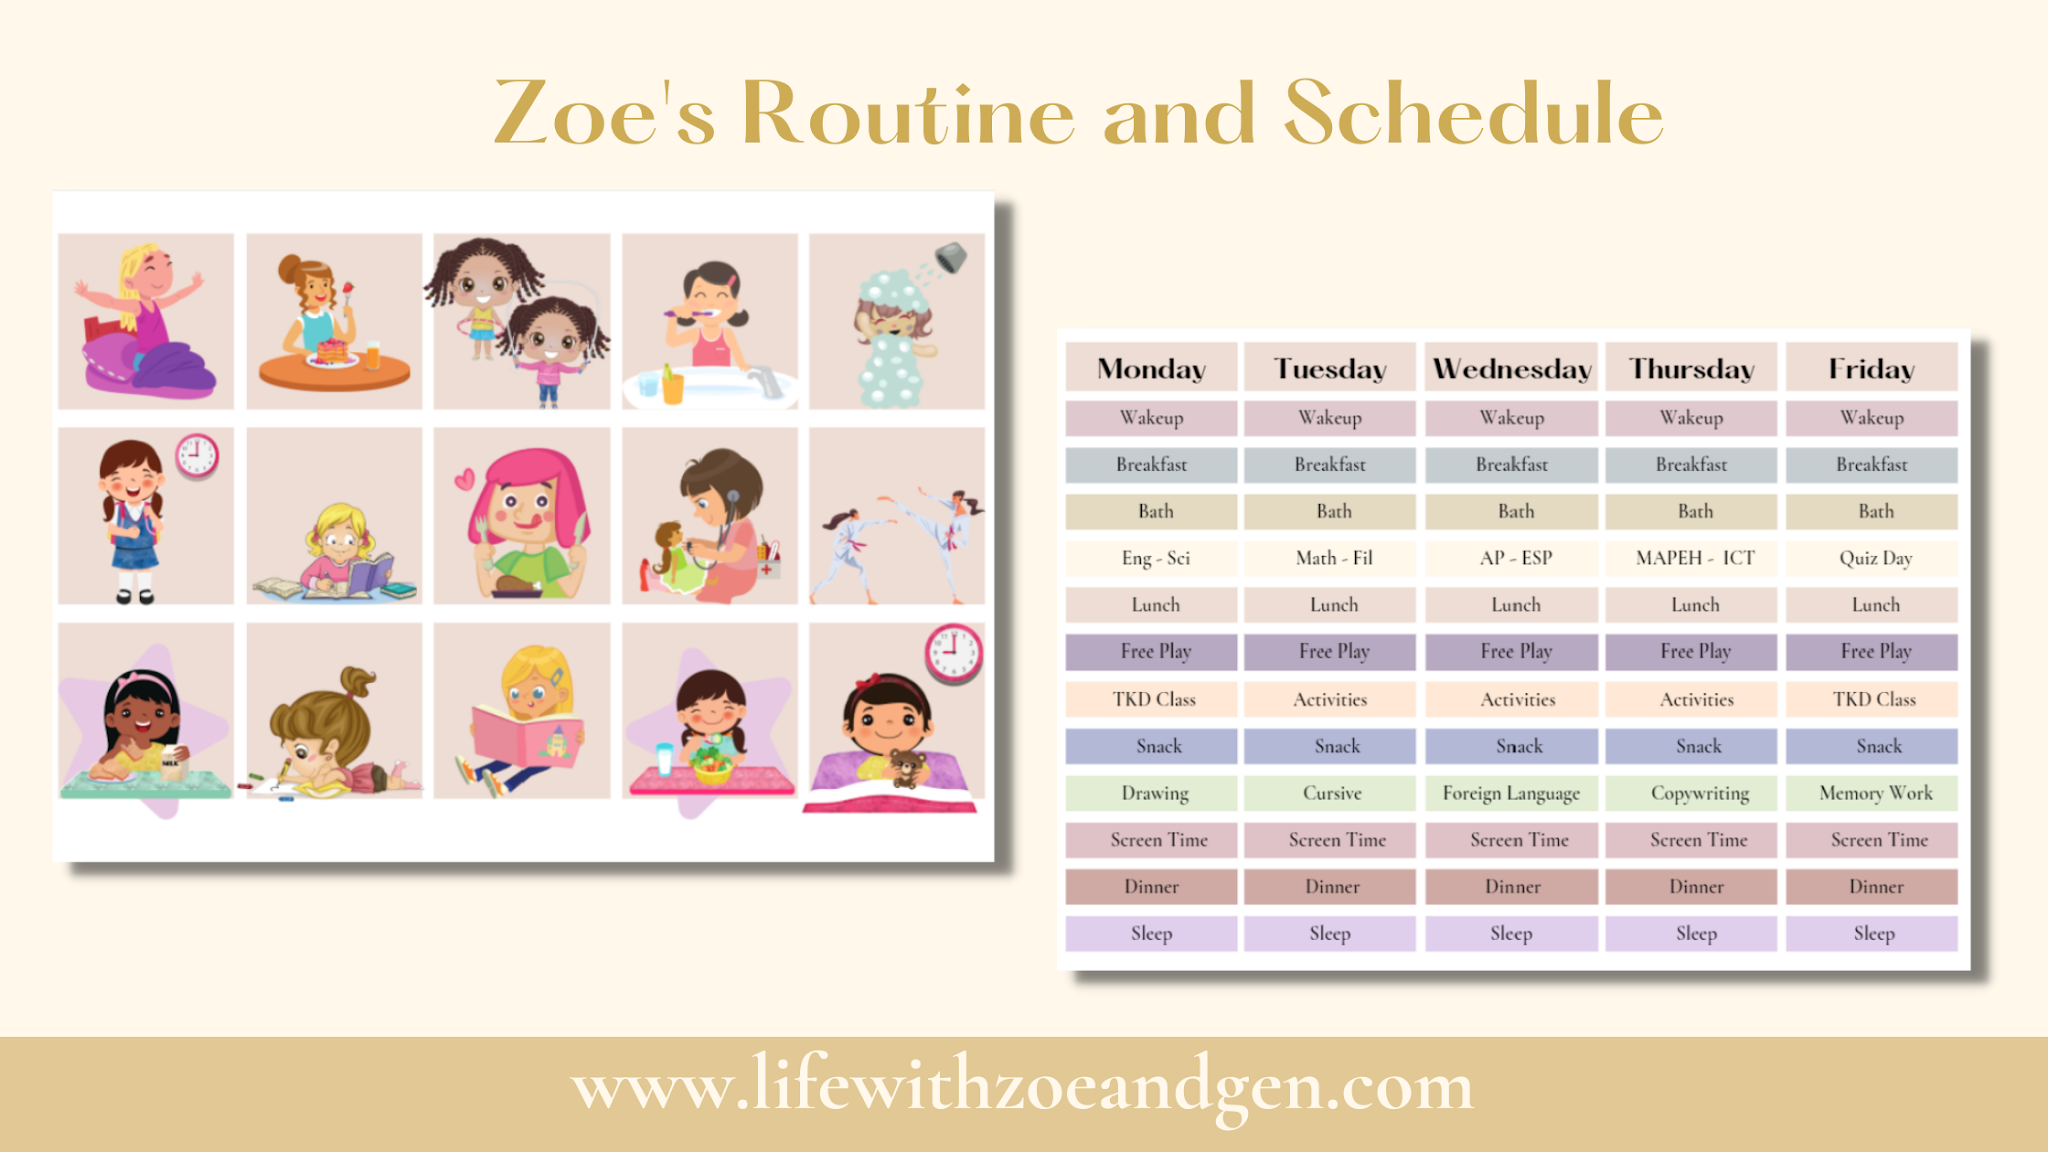 4 tips on how to survive your first week of homeschooling especially for the first time homeschoolers. Life with ZG l Homeschooling PH